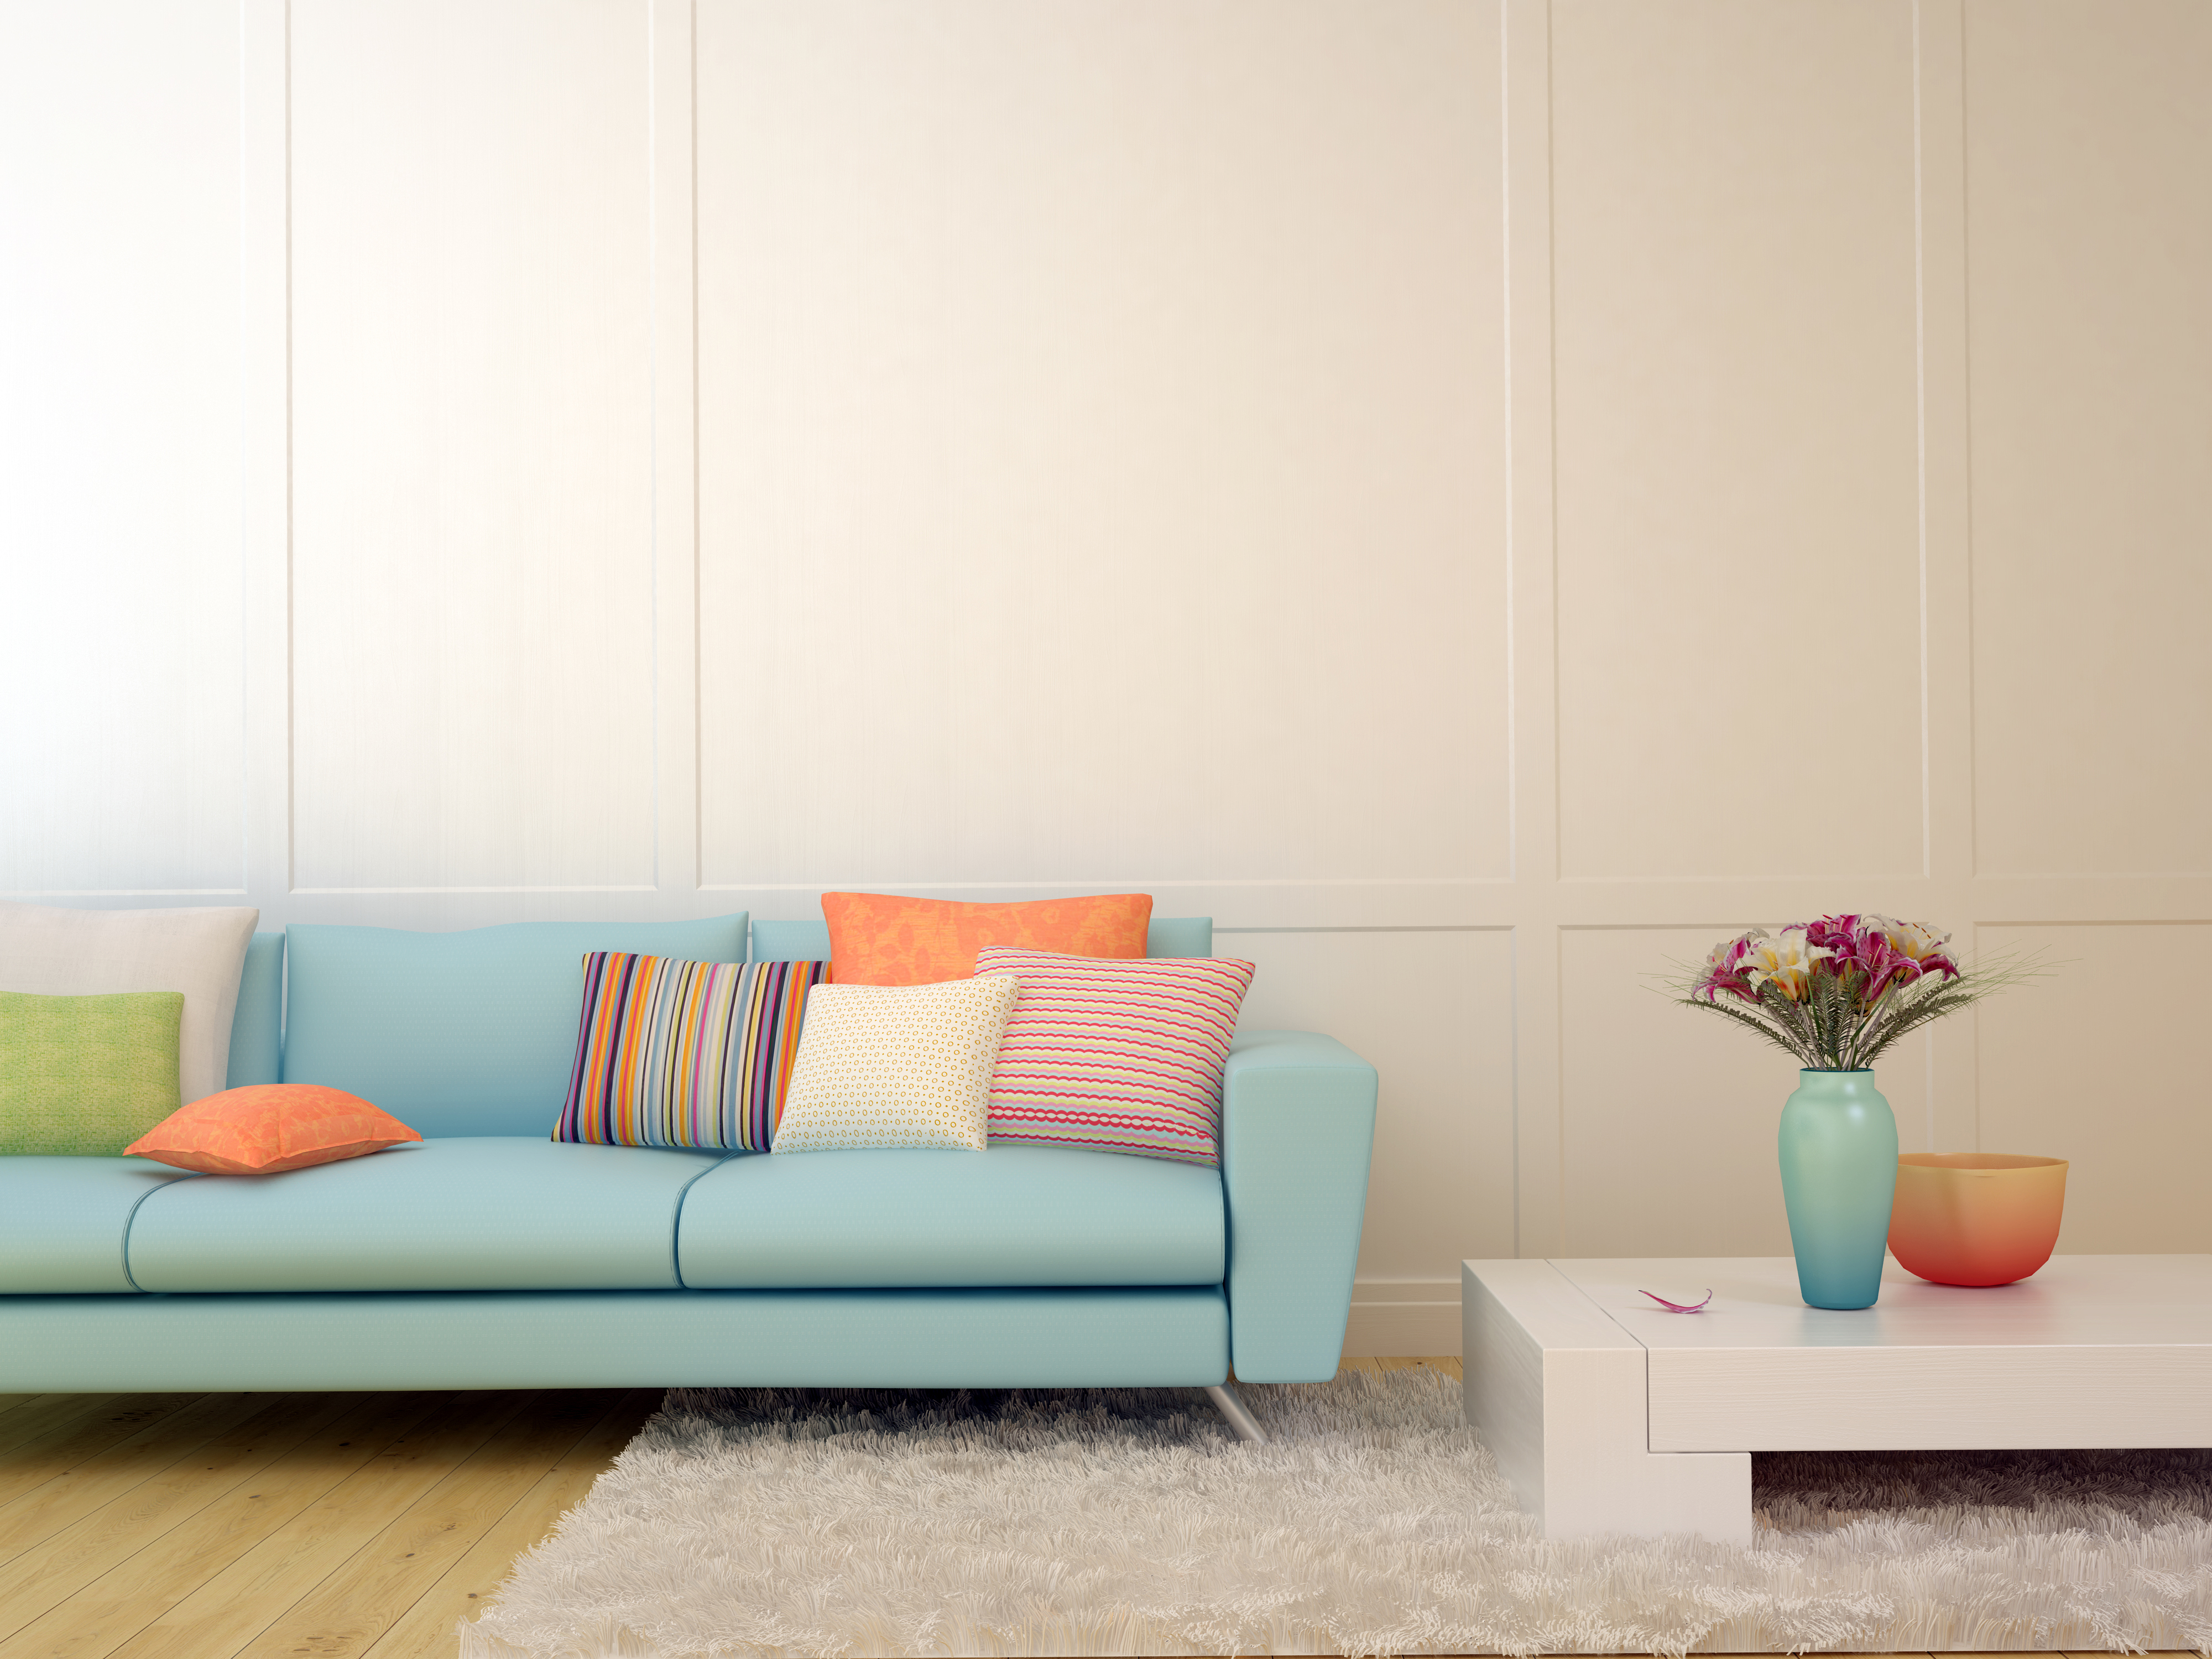 Bright composition of a light blue sofa with cushions  and a white table on the white carpet